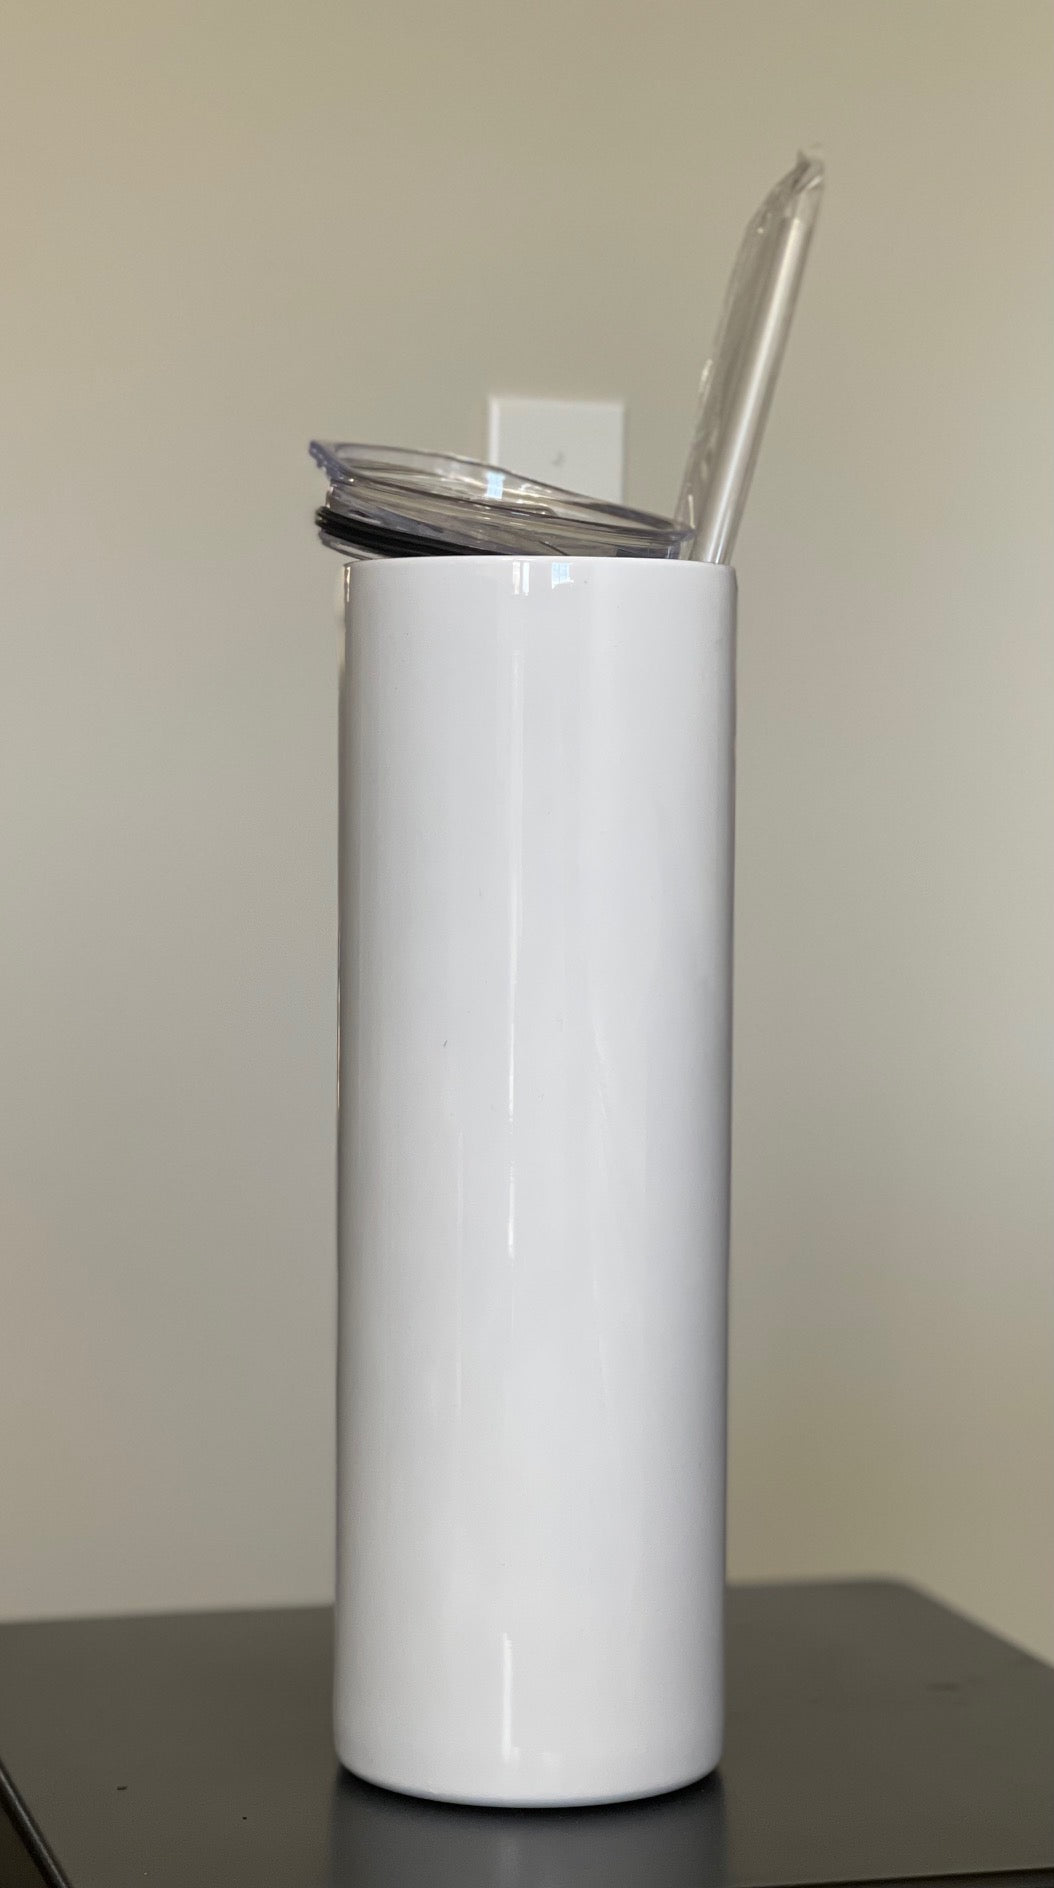 30 oz.  Slim White (Straight) Tumbler with Lid and Straw for Sublimation